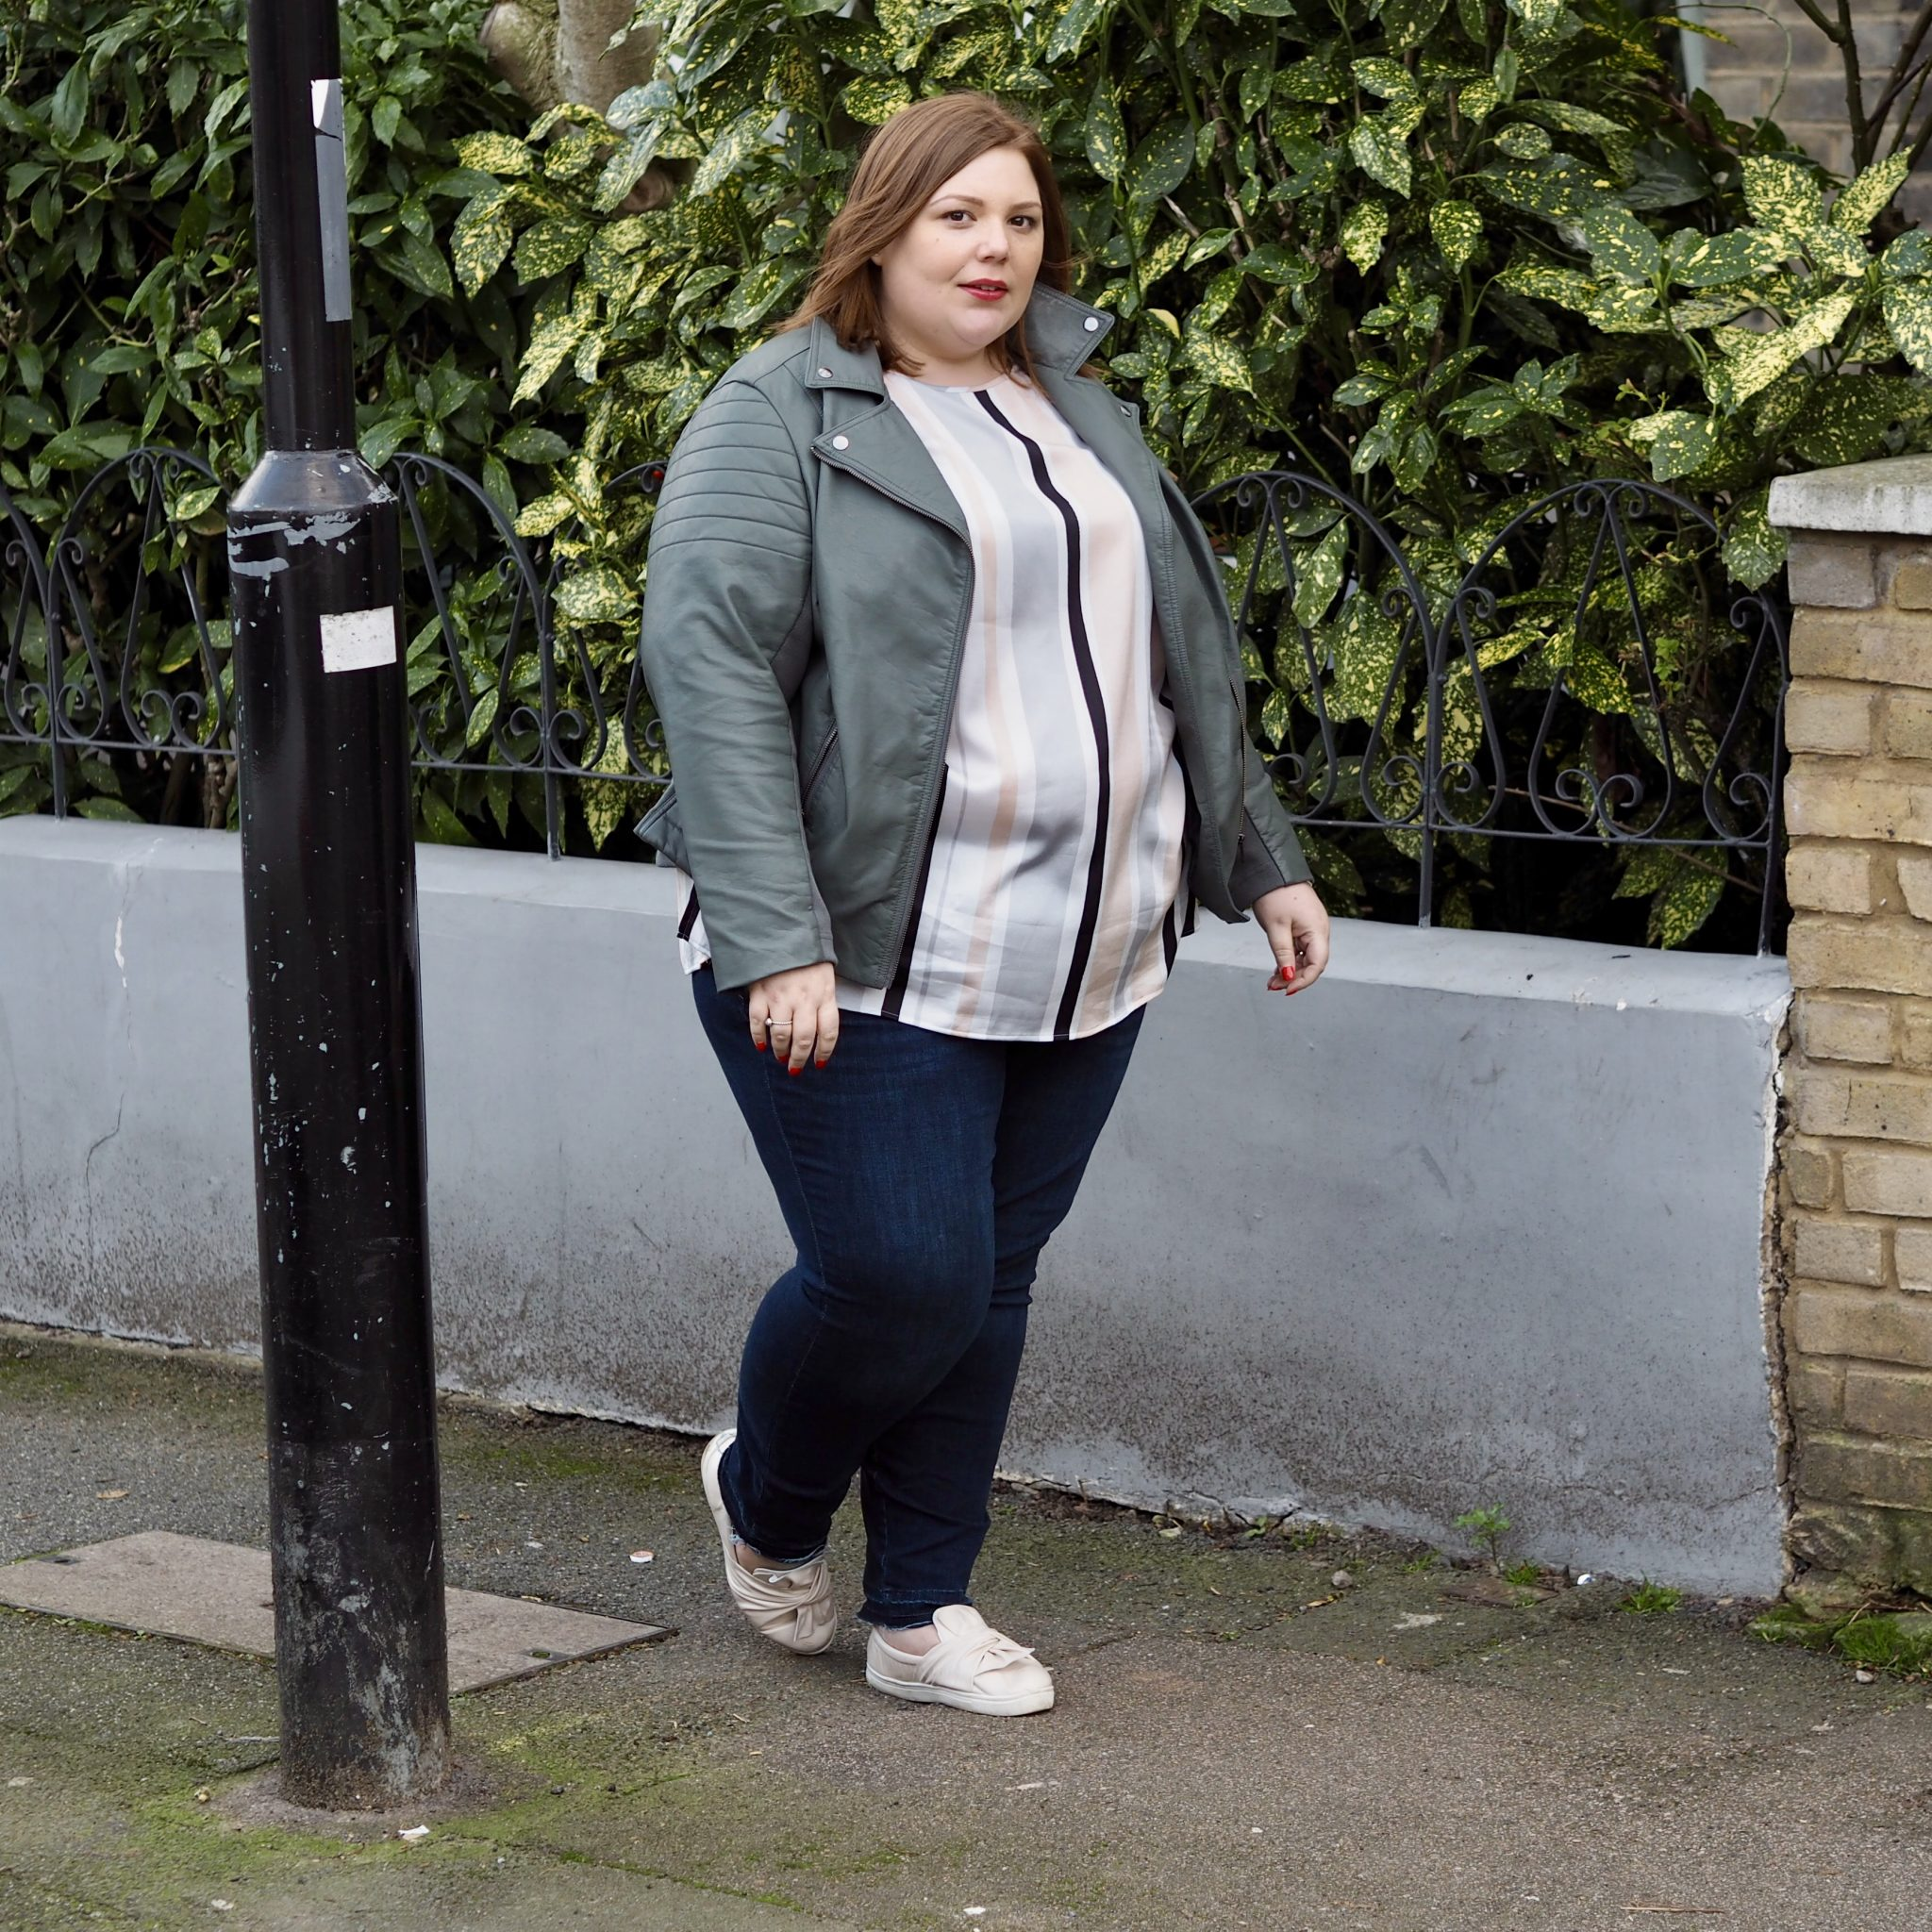 M&S plus size clothing - pretty big butterflies